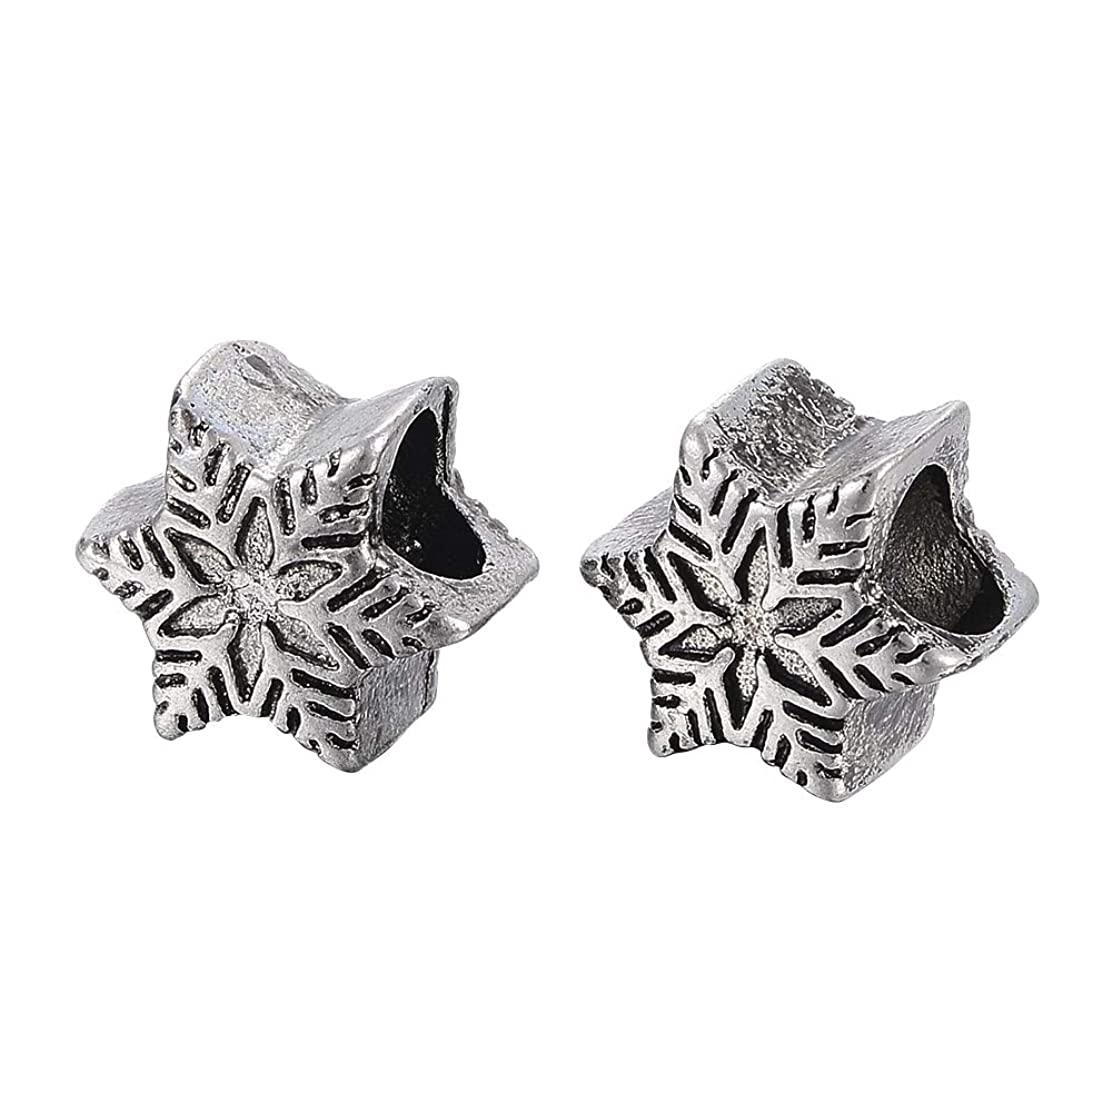 PH PandaHall 6pcs Stainless Steel European Beads Large Hole Charm Beads Antique Silver Spacer Beads Snowflake Shape Charms for Bracelet Necklace Making 13x11x8.5mm